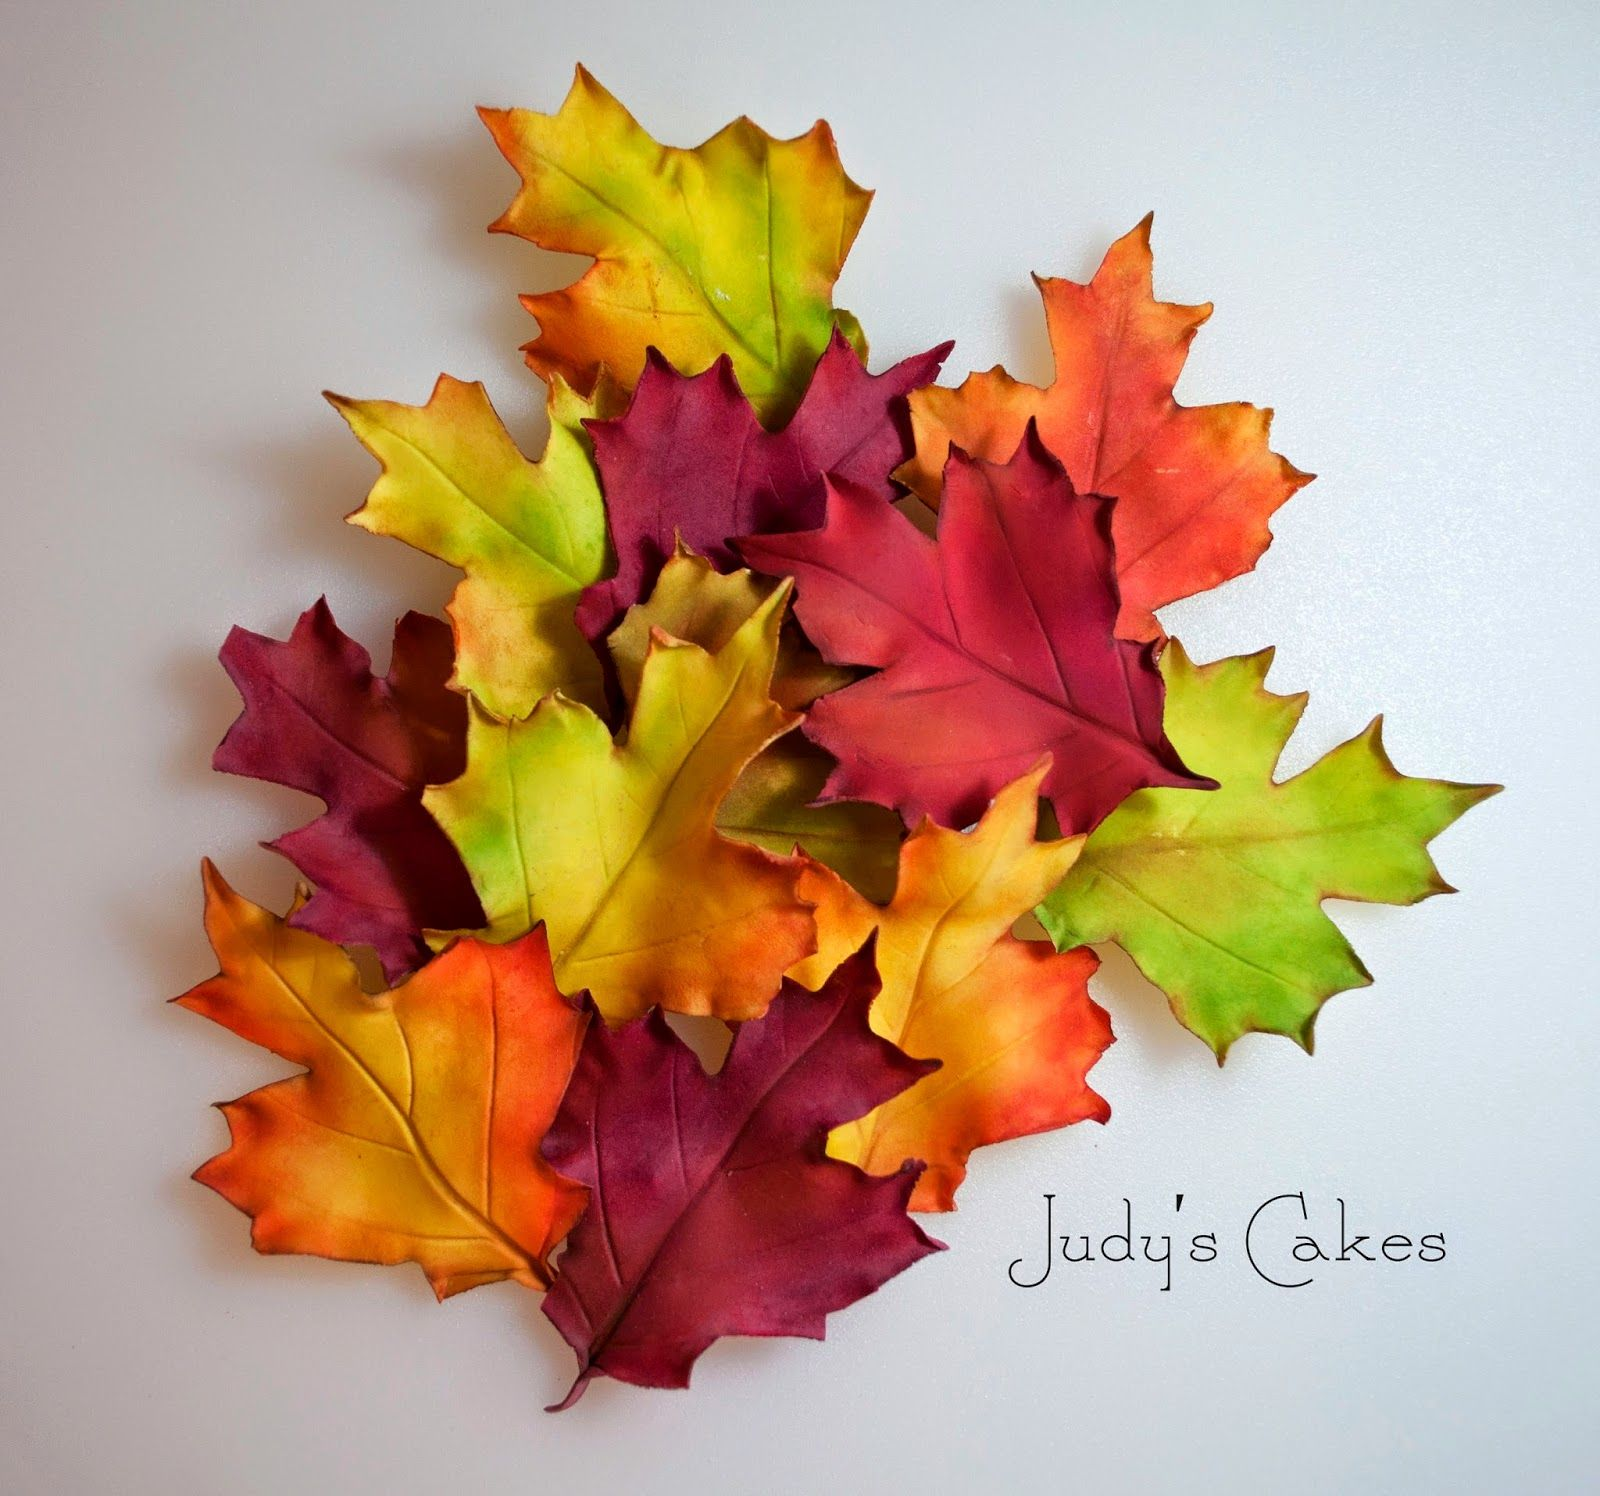 Cake Decorating How To Make A Leaf : Gumpaste Autumn Leaves Tutorial Leaves, Sugaring and Autumn